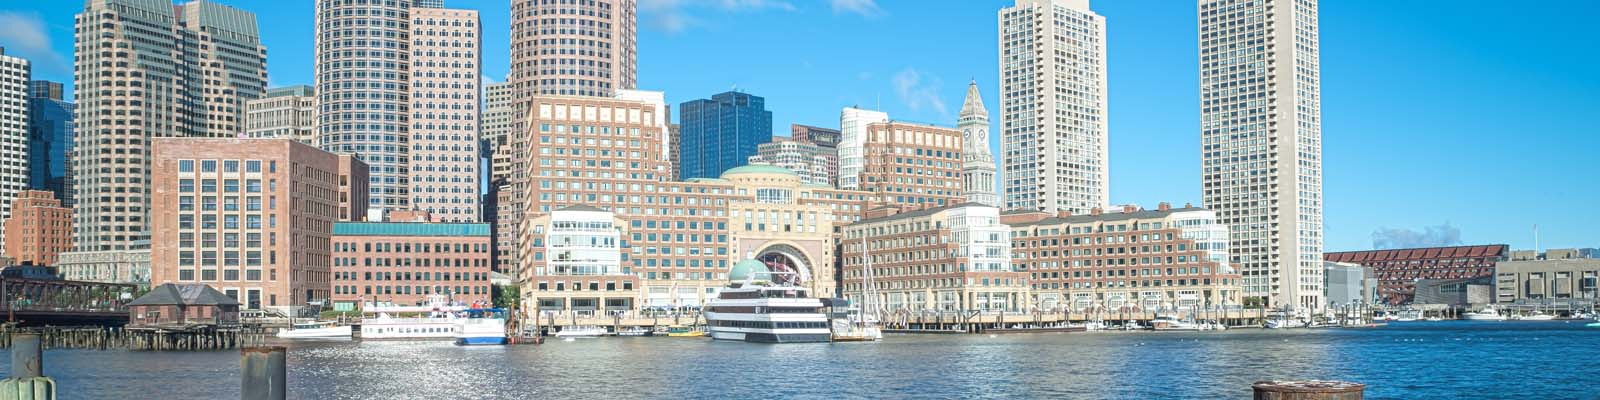 This is a cityscape image of Boston Massachusetts where ASTA-USA provides professional translation services.